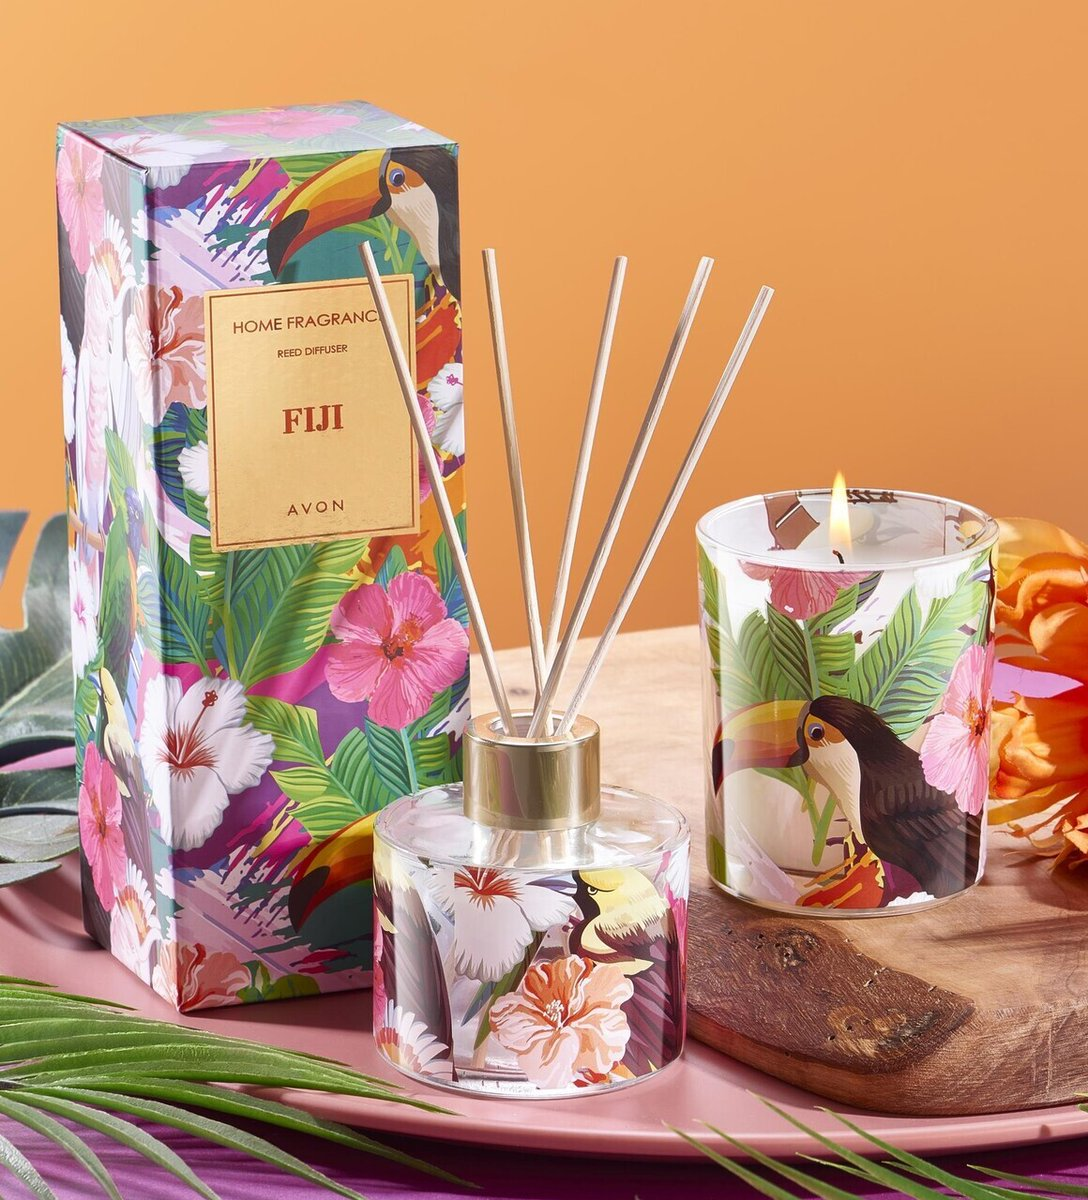 Get swept away to the dreamy shores of a tropical island as the aroma of lily of the valley, musk & jasmine float through your room.  It's an incredible 2 for £15 offer!  http://wu.to/yRDktupic.twitter.com/Uh59FzWw59